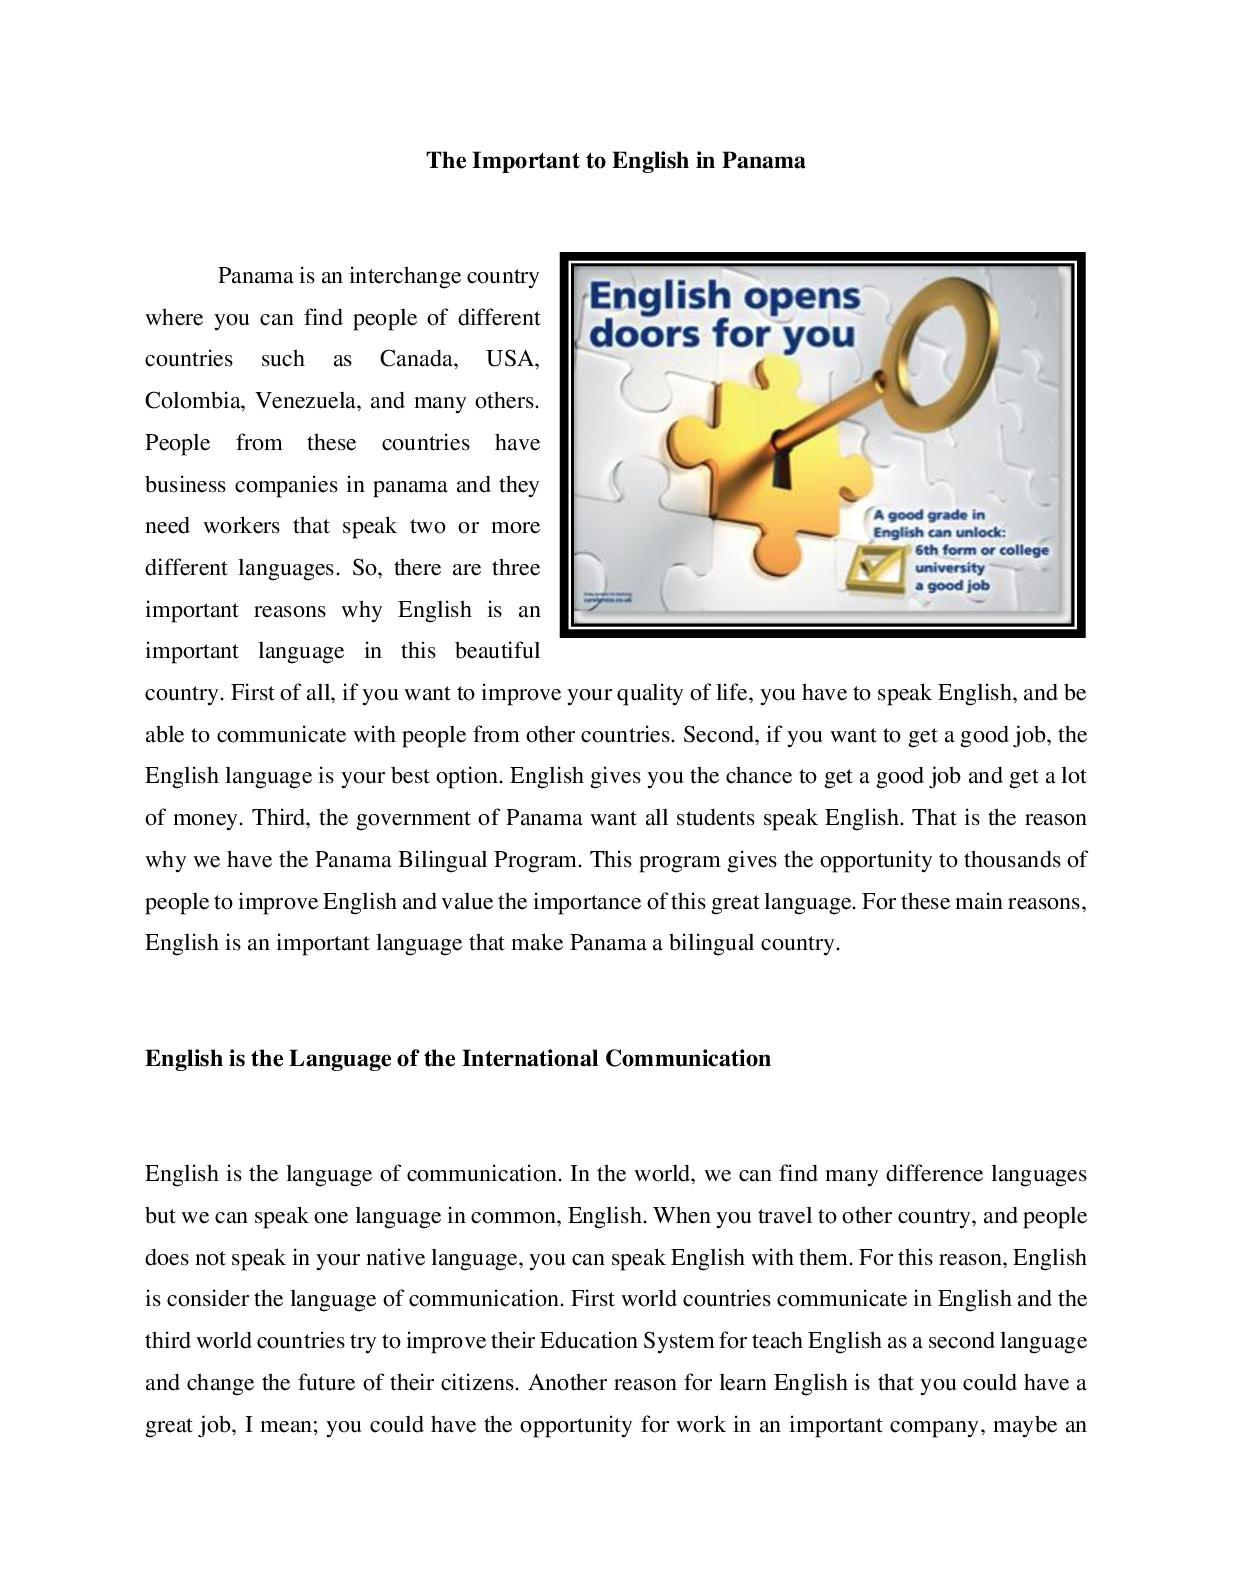 The Importance Of English In Panama Convertido